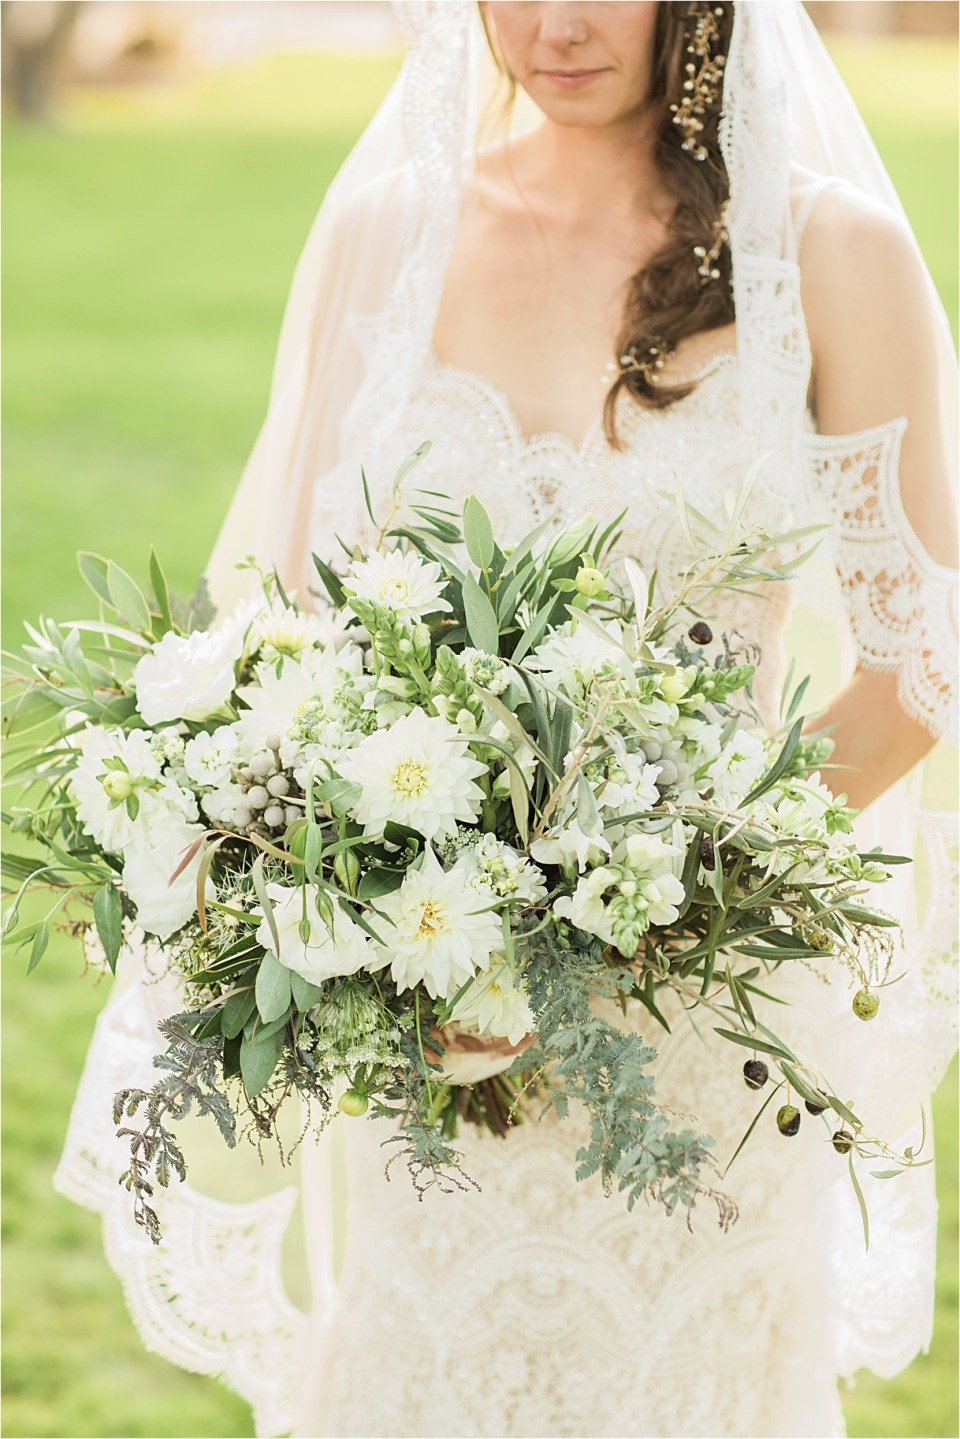 Bridal Bouquet from Atelier De LaFluer at Tanque Verde Ranch Wedding